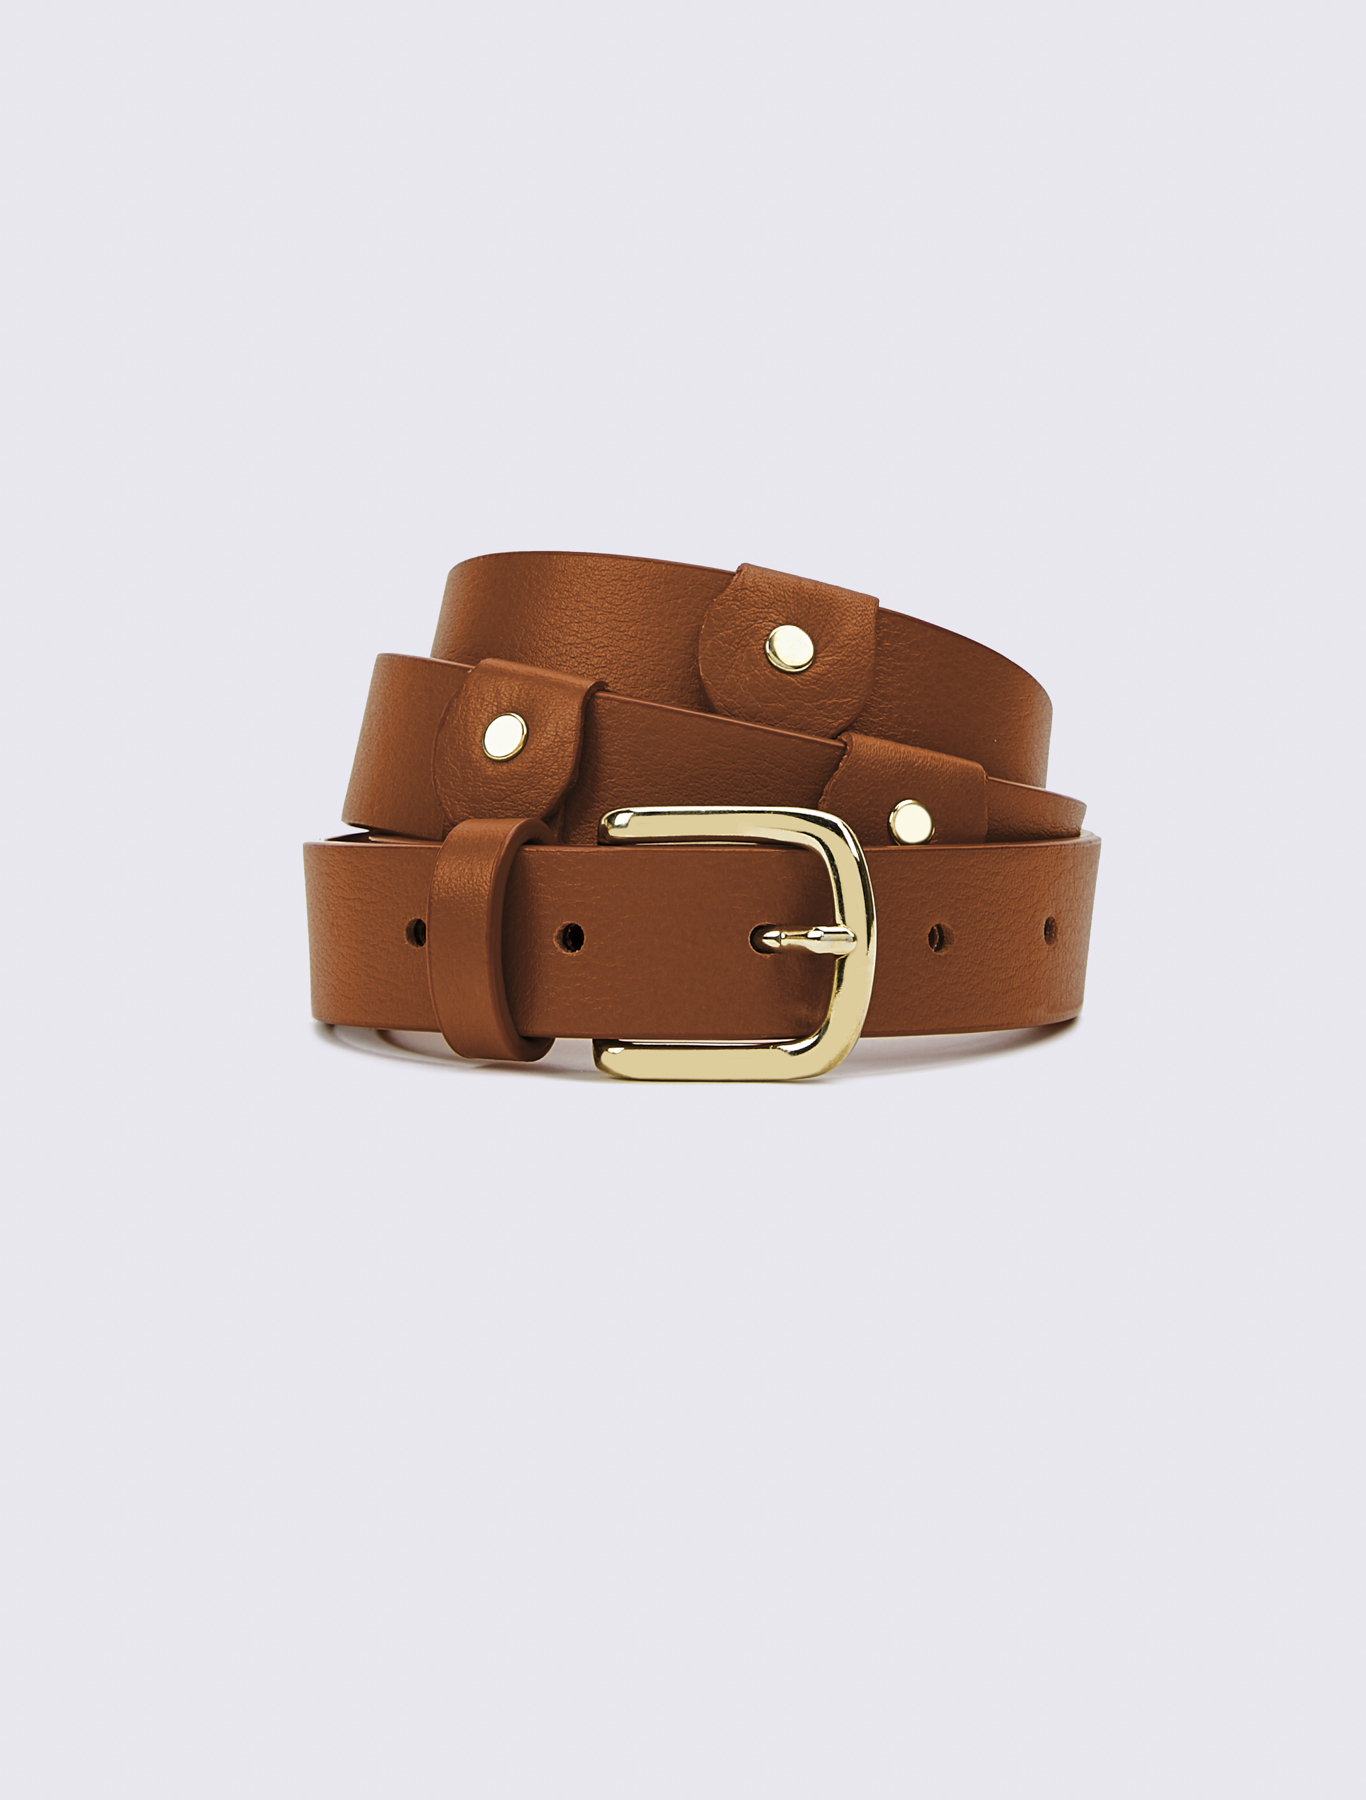 001eb4dde2d20 Leather belt, tobacco - Marella